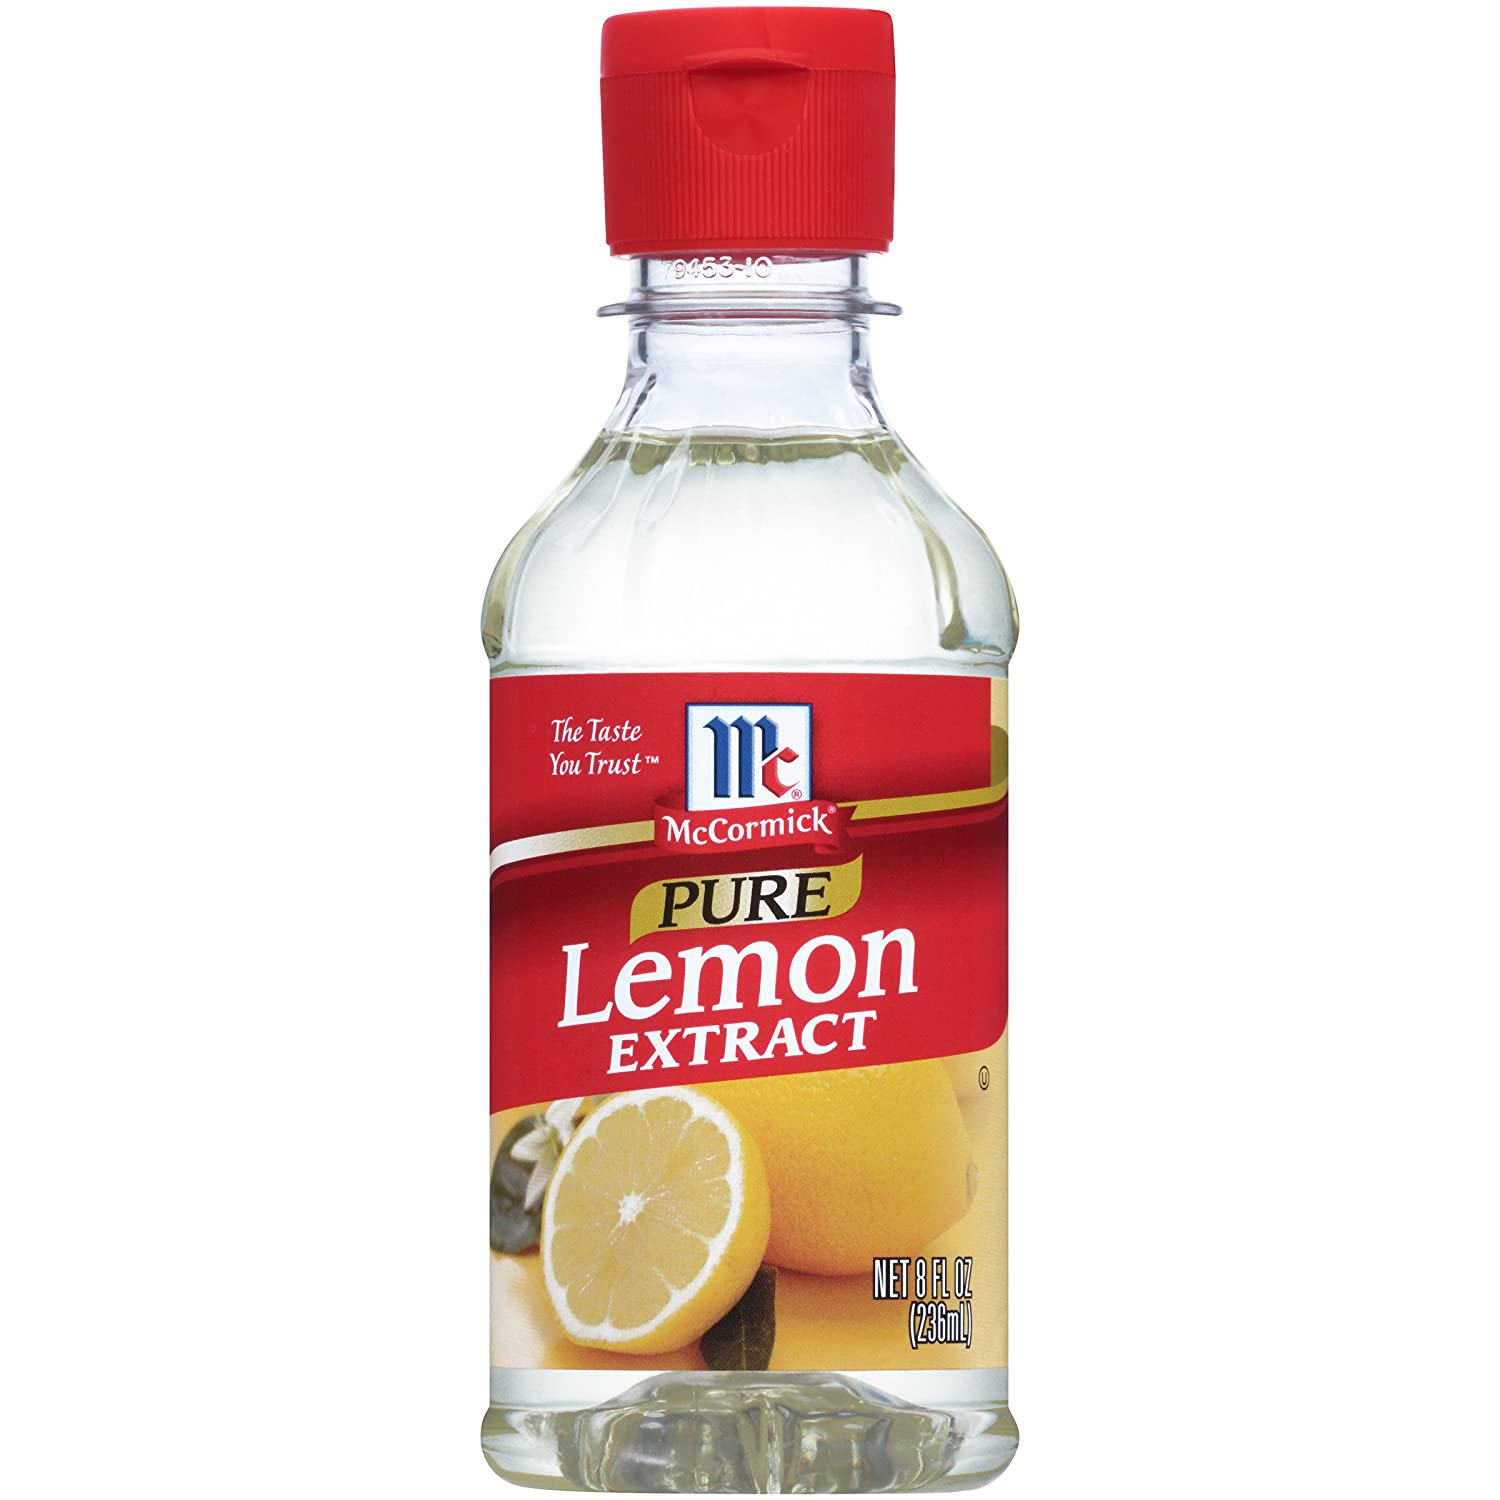 McCormick Pure Lemon Extract, 8 fl oz